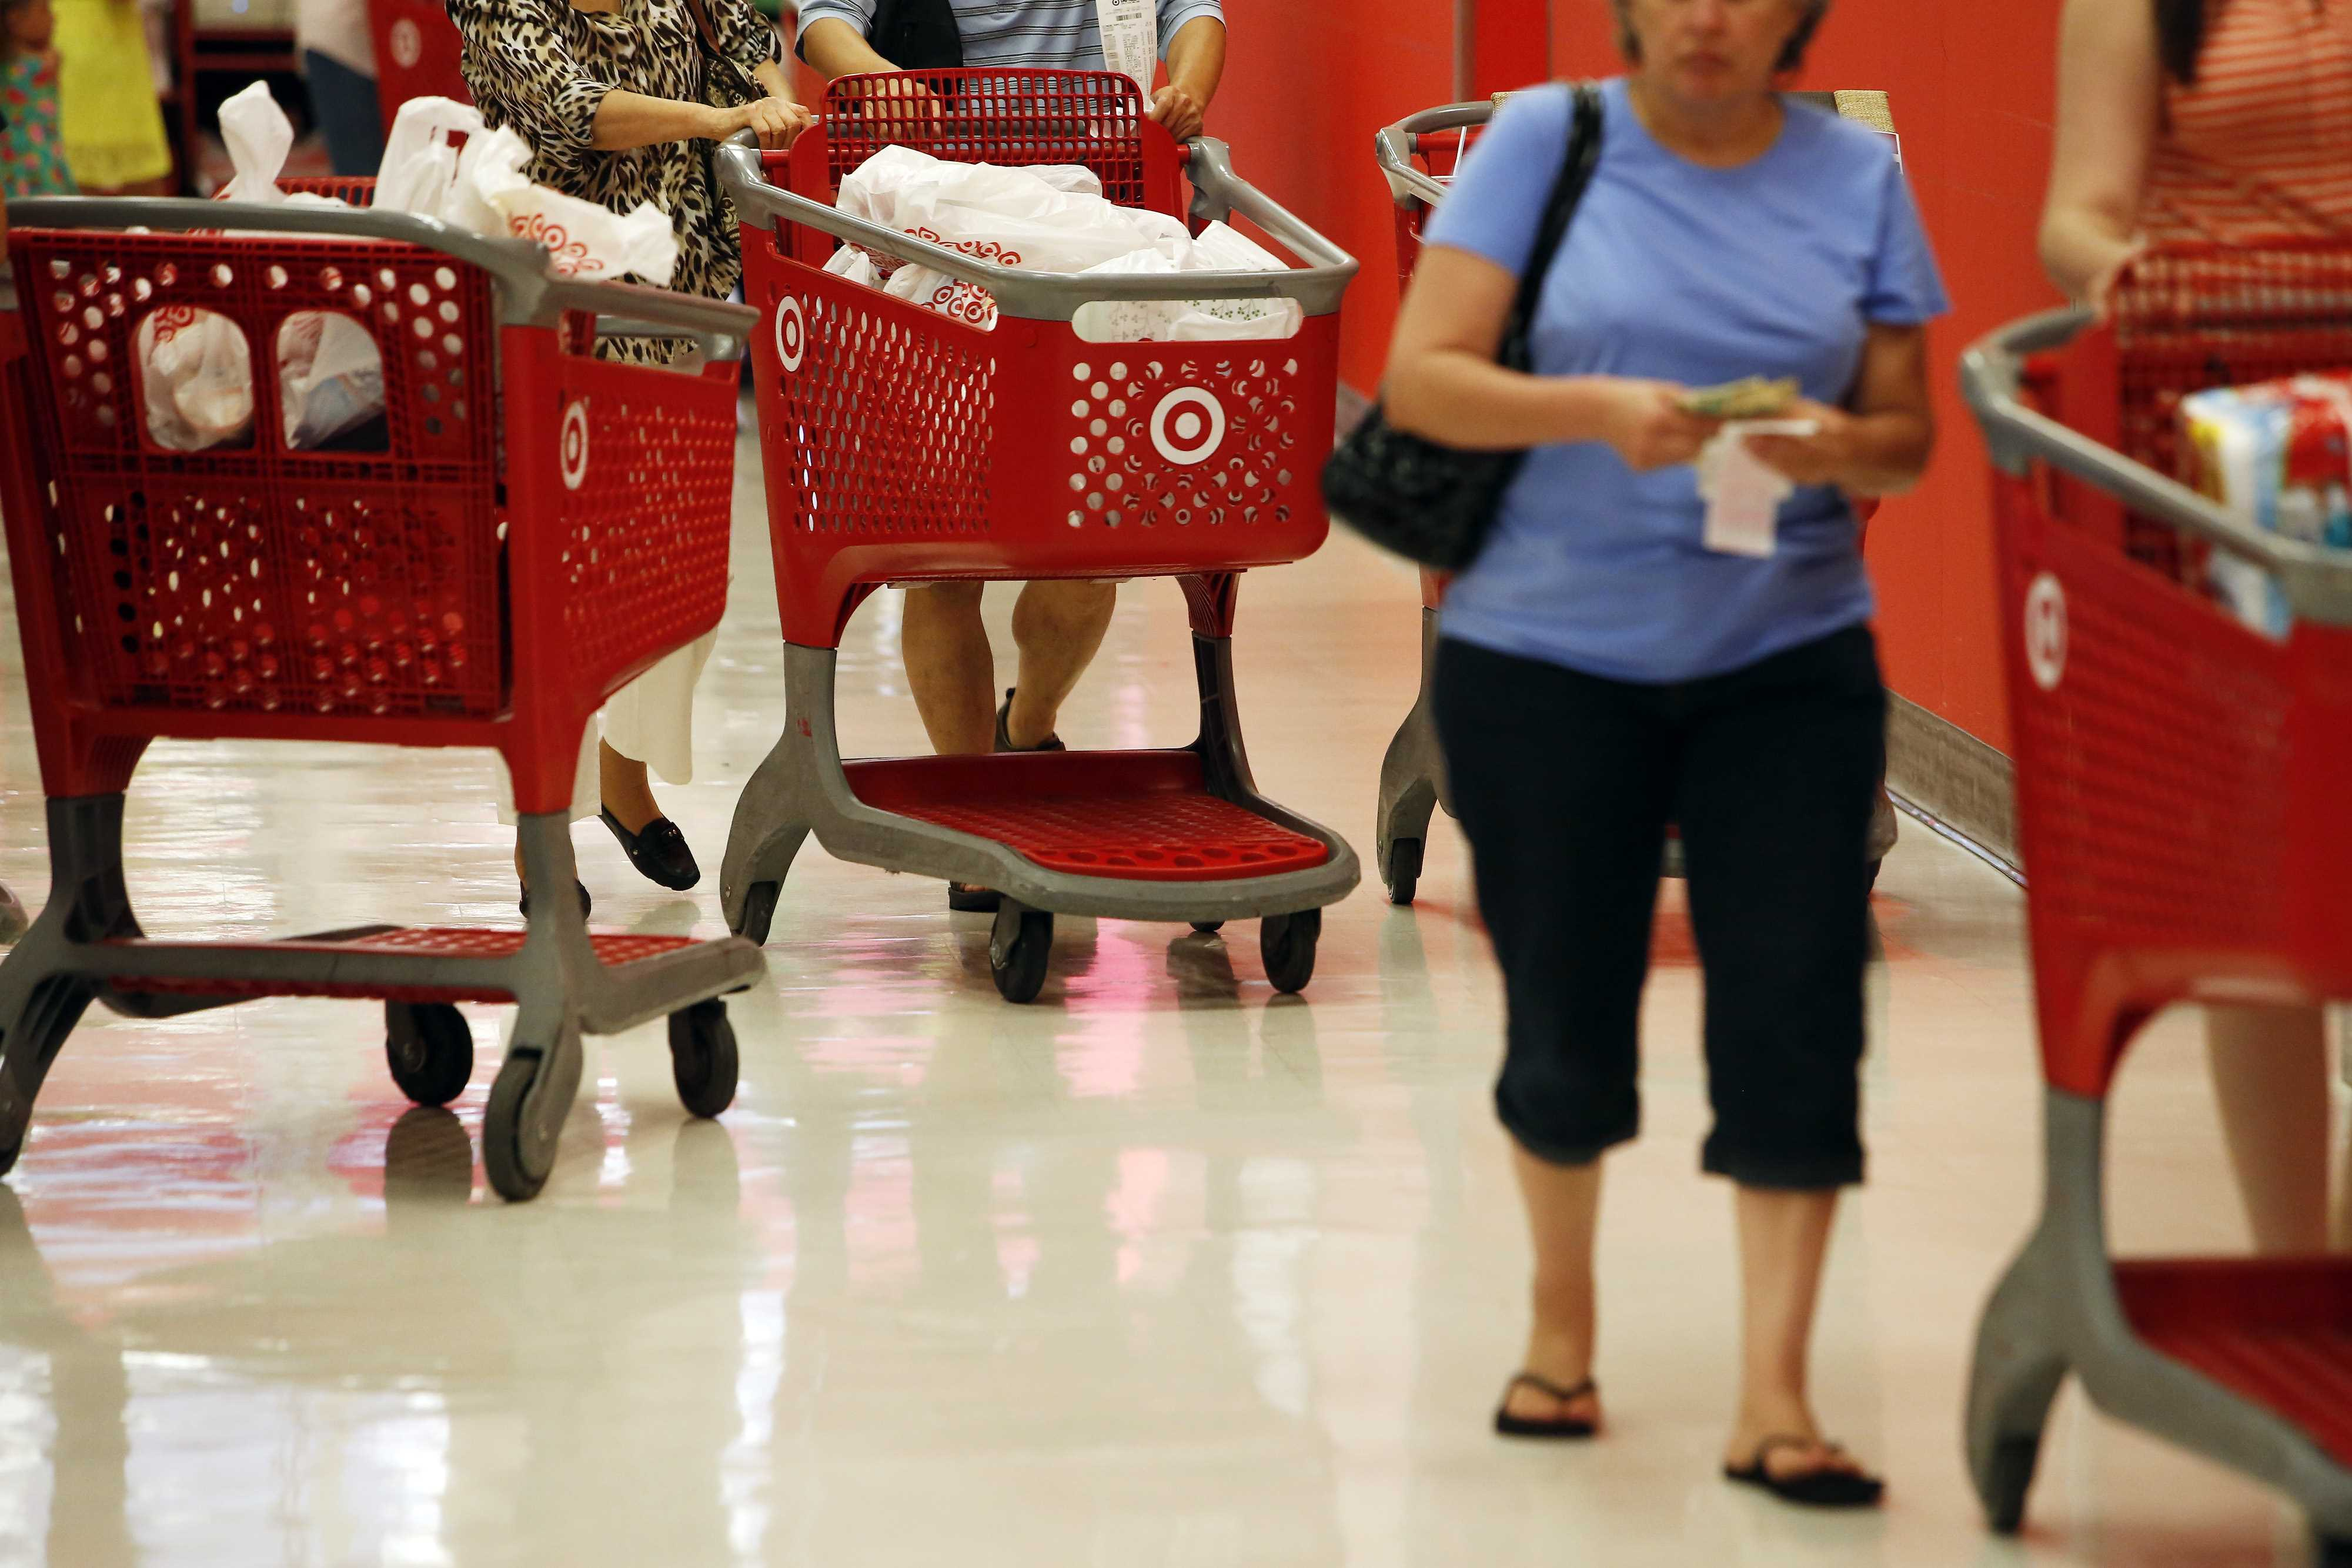 Target apologizes for data breach, retailers embrace security upgrade